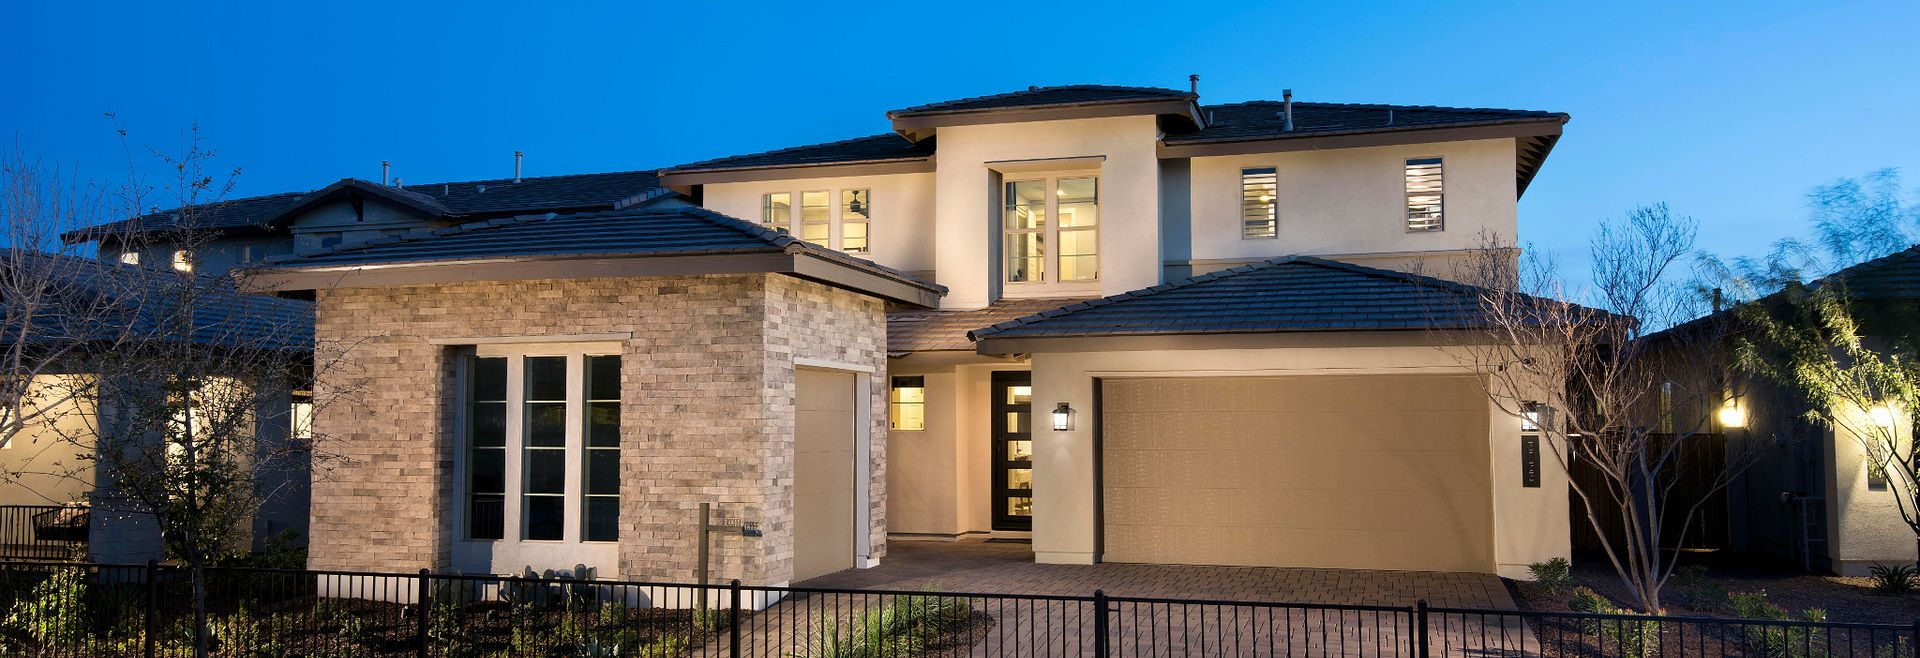 Inspire at Recker Pointe by Shea Homes in Gilbert, AZ